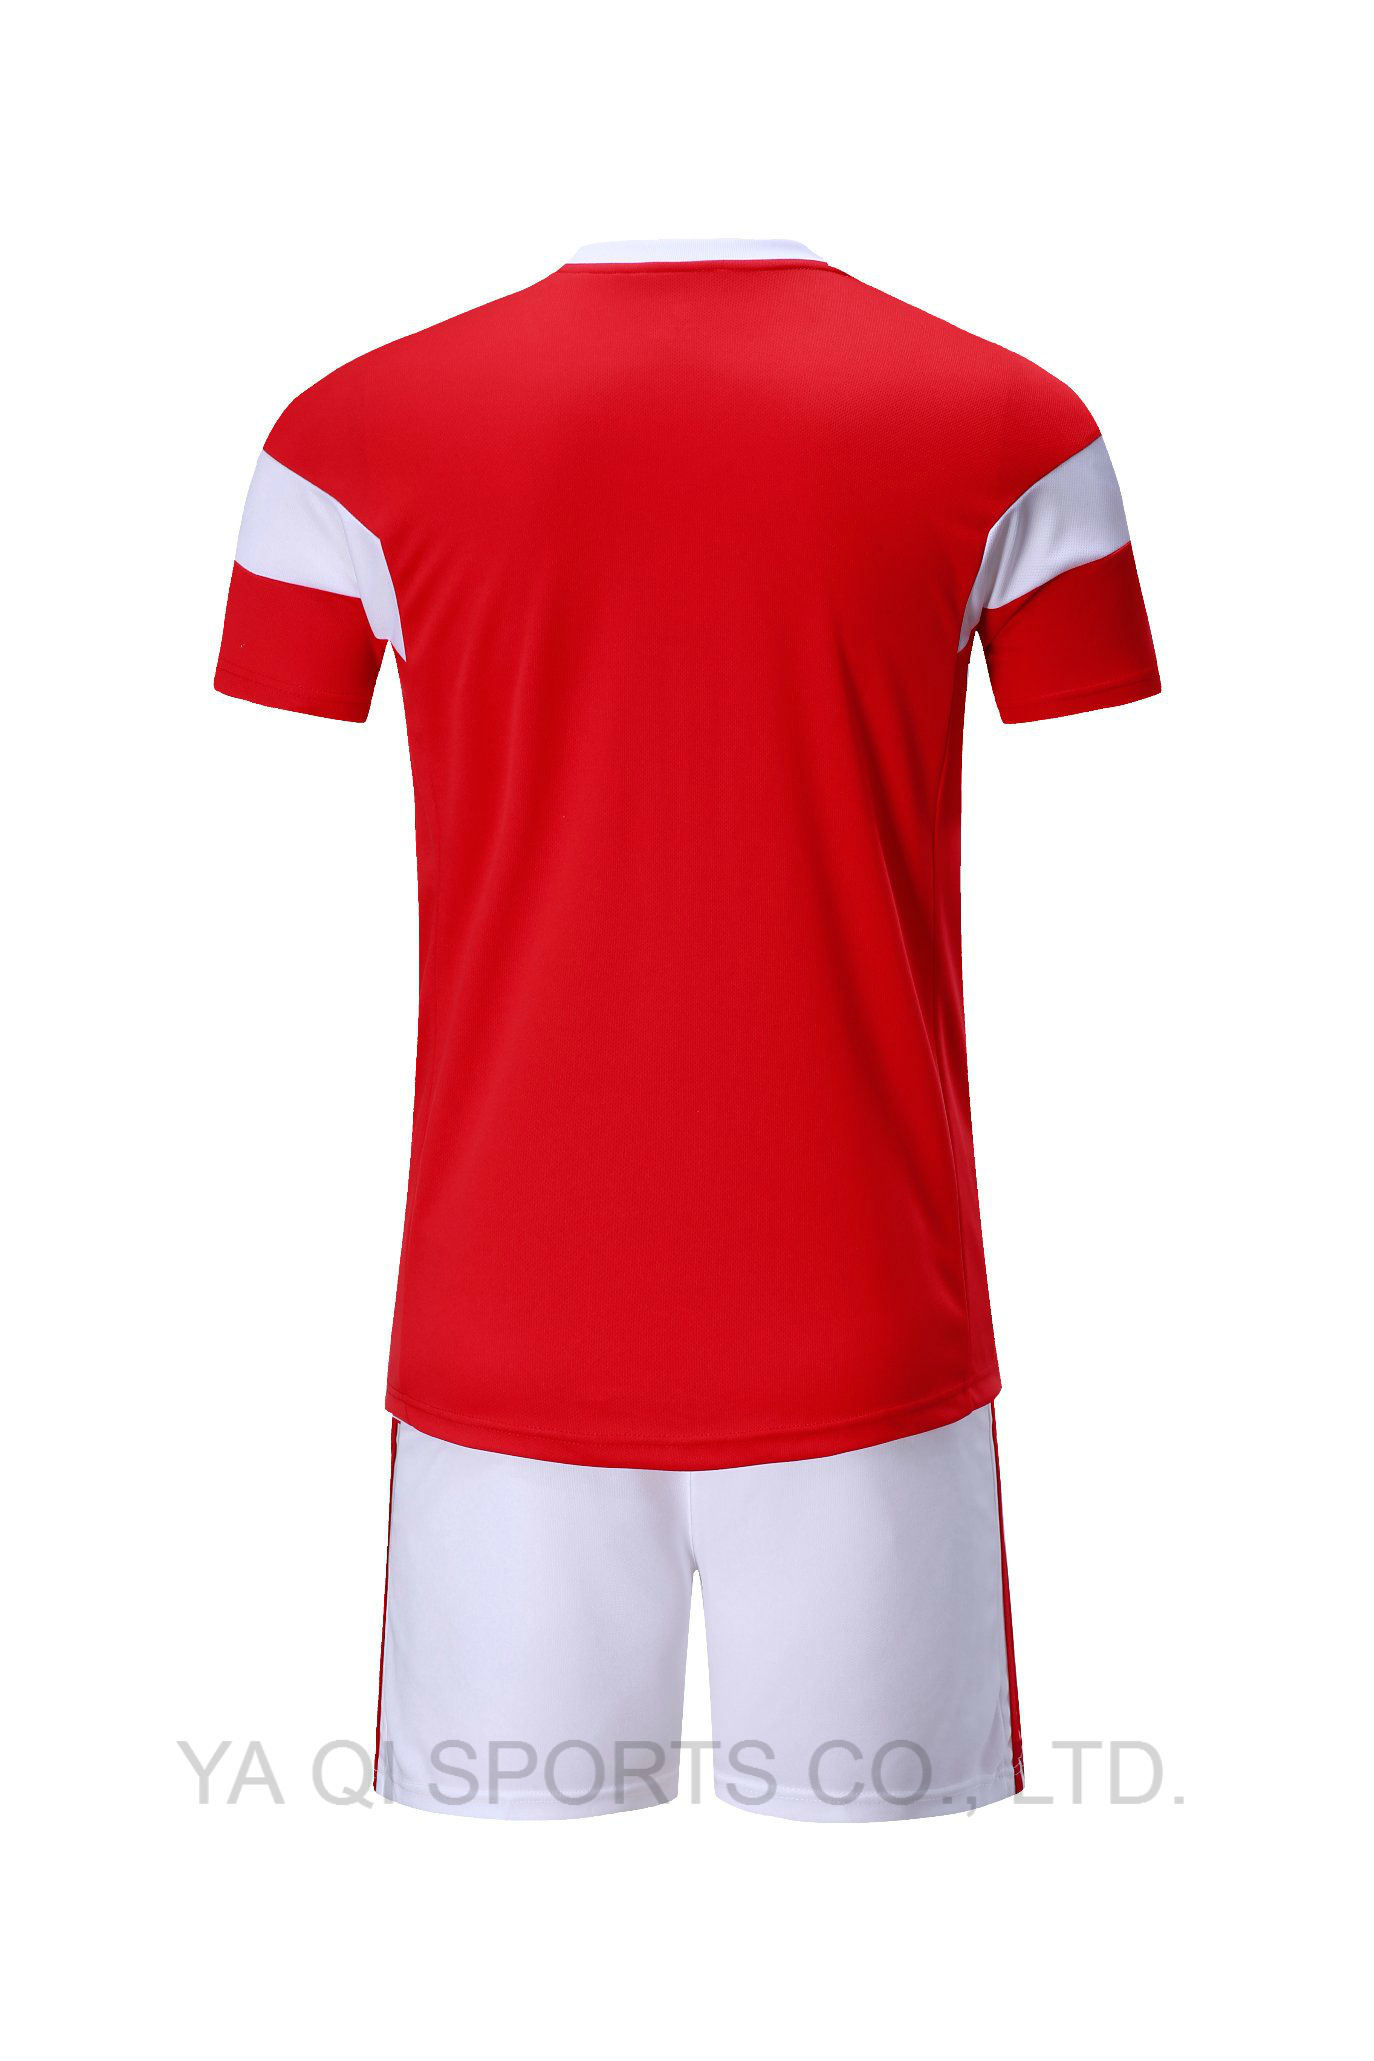 China New Design Customize 2018 World Cup Russia Soccer Team Foot